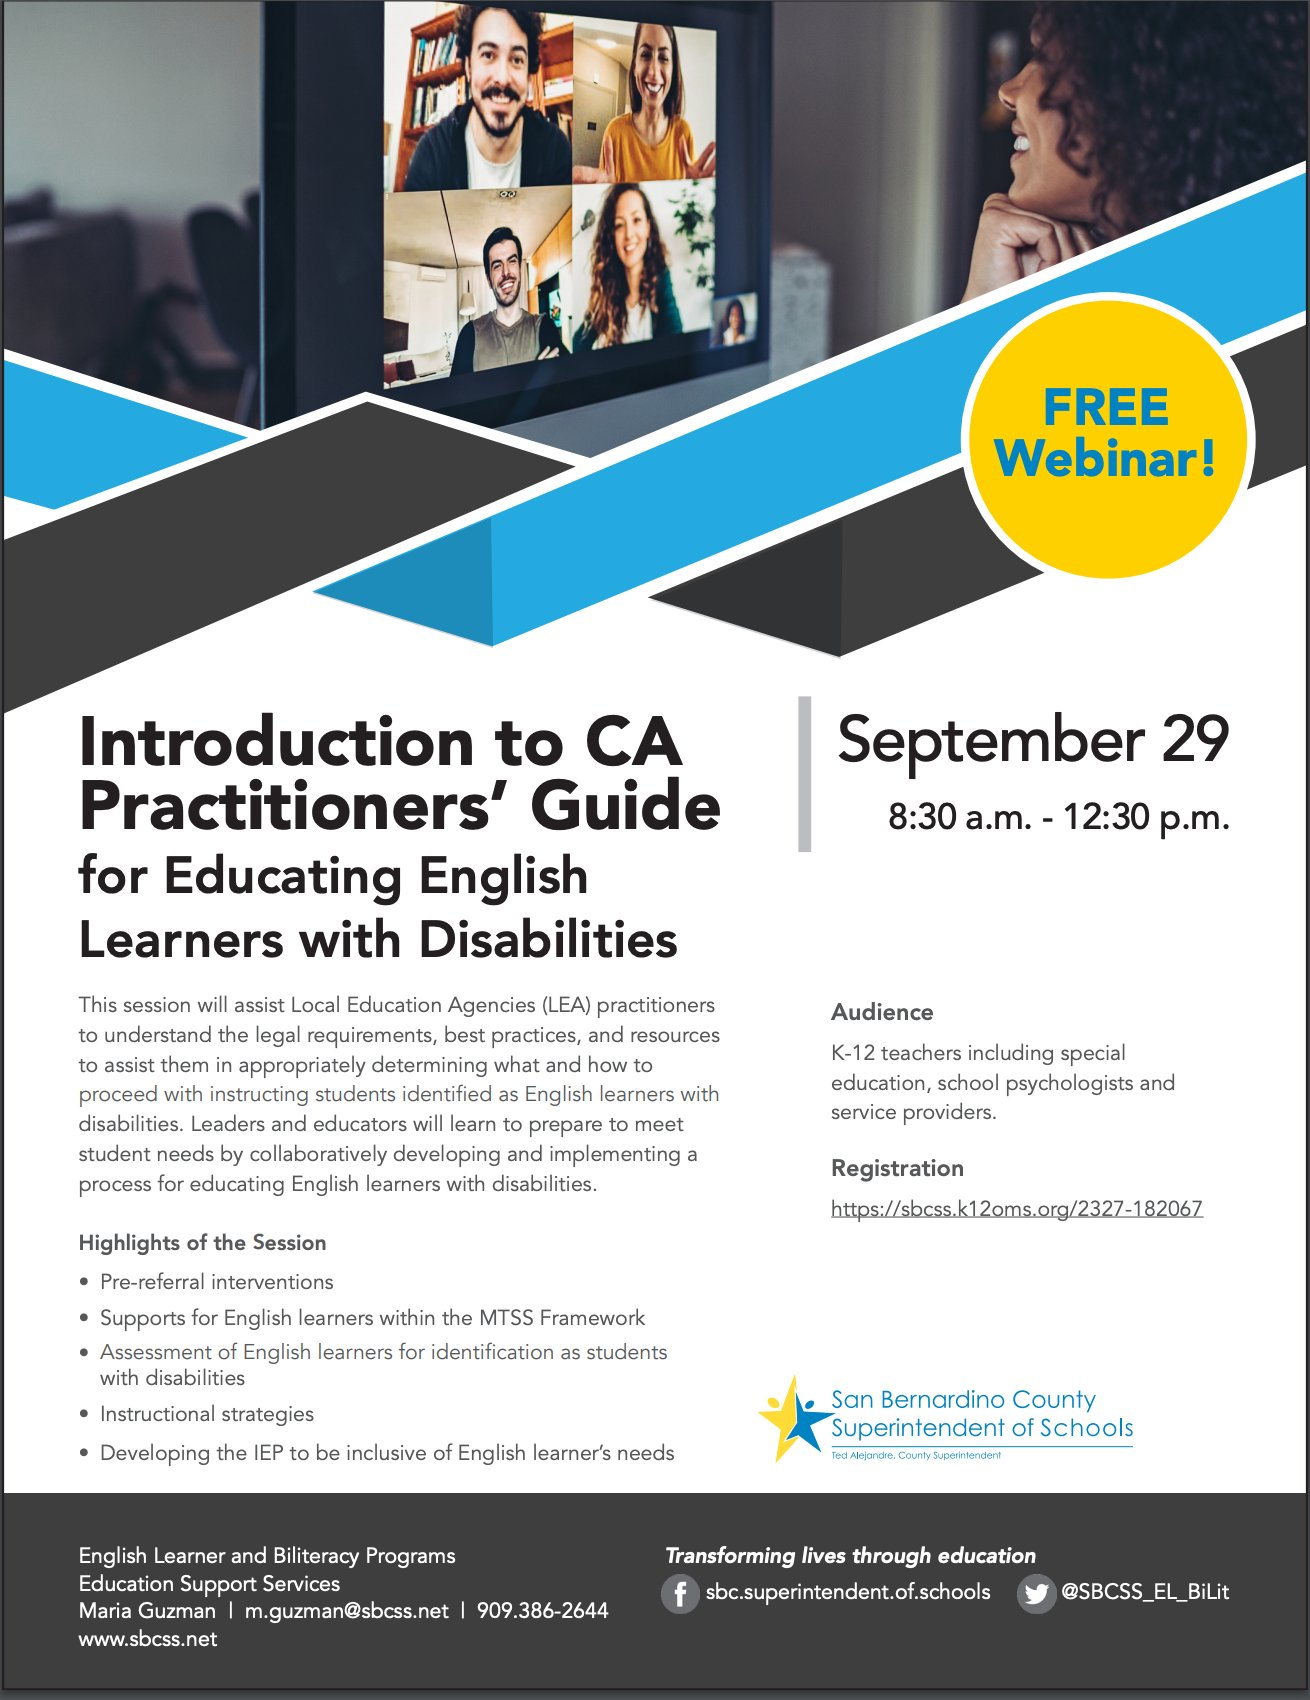 Introduction to CA Practitioners' Guide for Educating English Learners with Disabilities